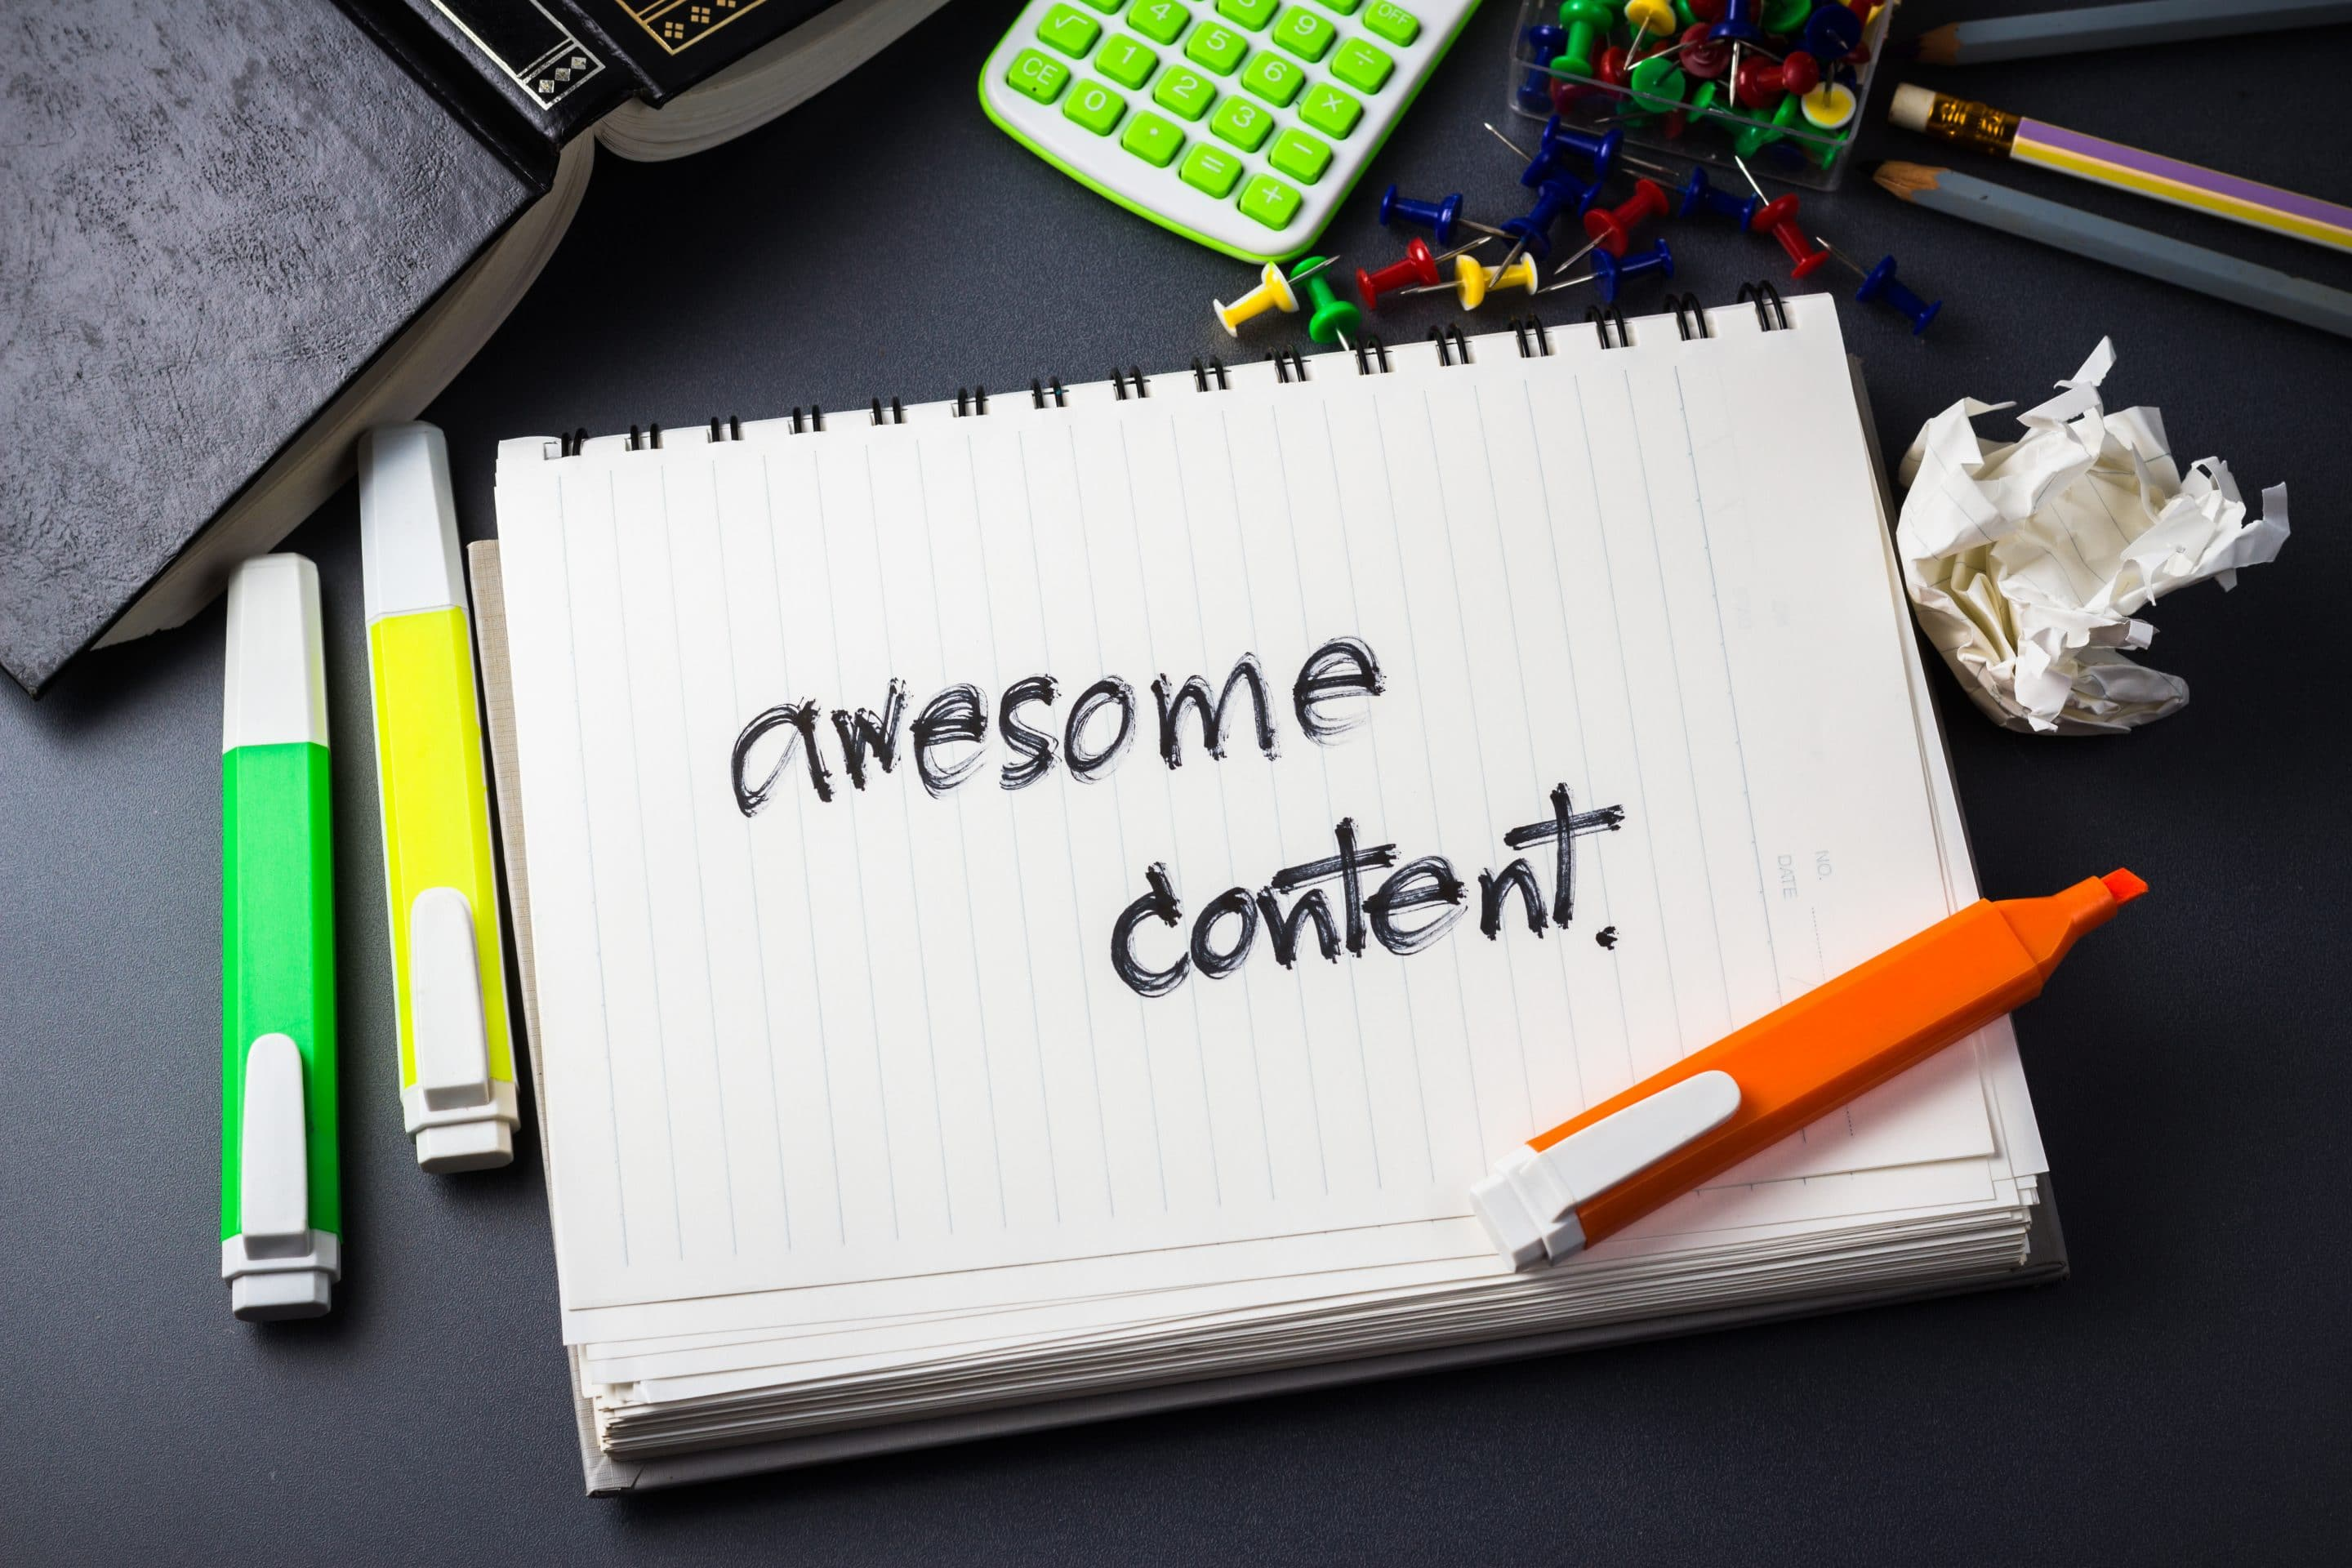 Content Strategy: 7 Rules for Creating Awesome Content